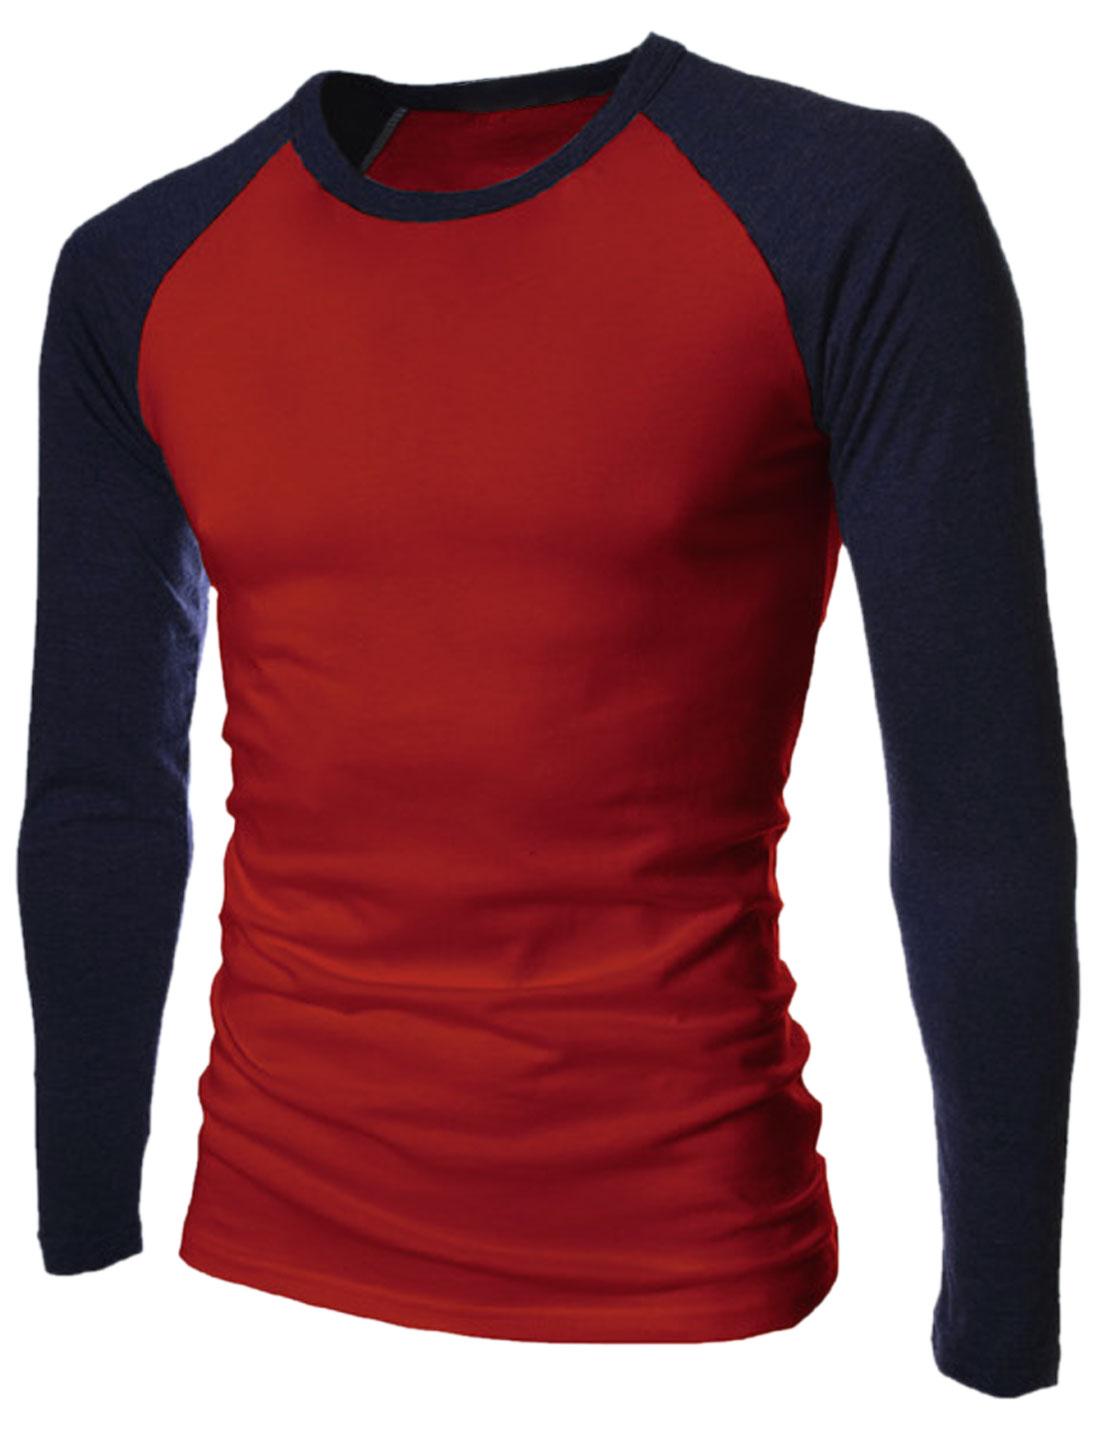 Round Neck Raglan Sleeves Contrast Color Casual T-Shirt for Men Burgundy Navy Blue S